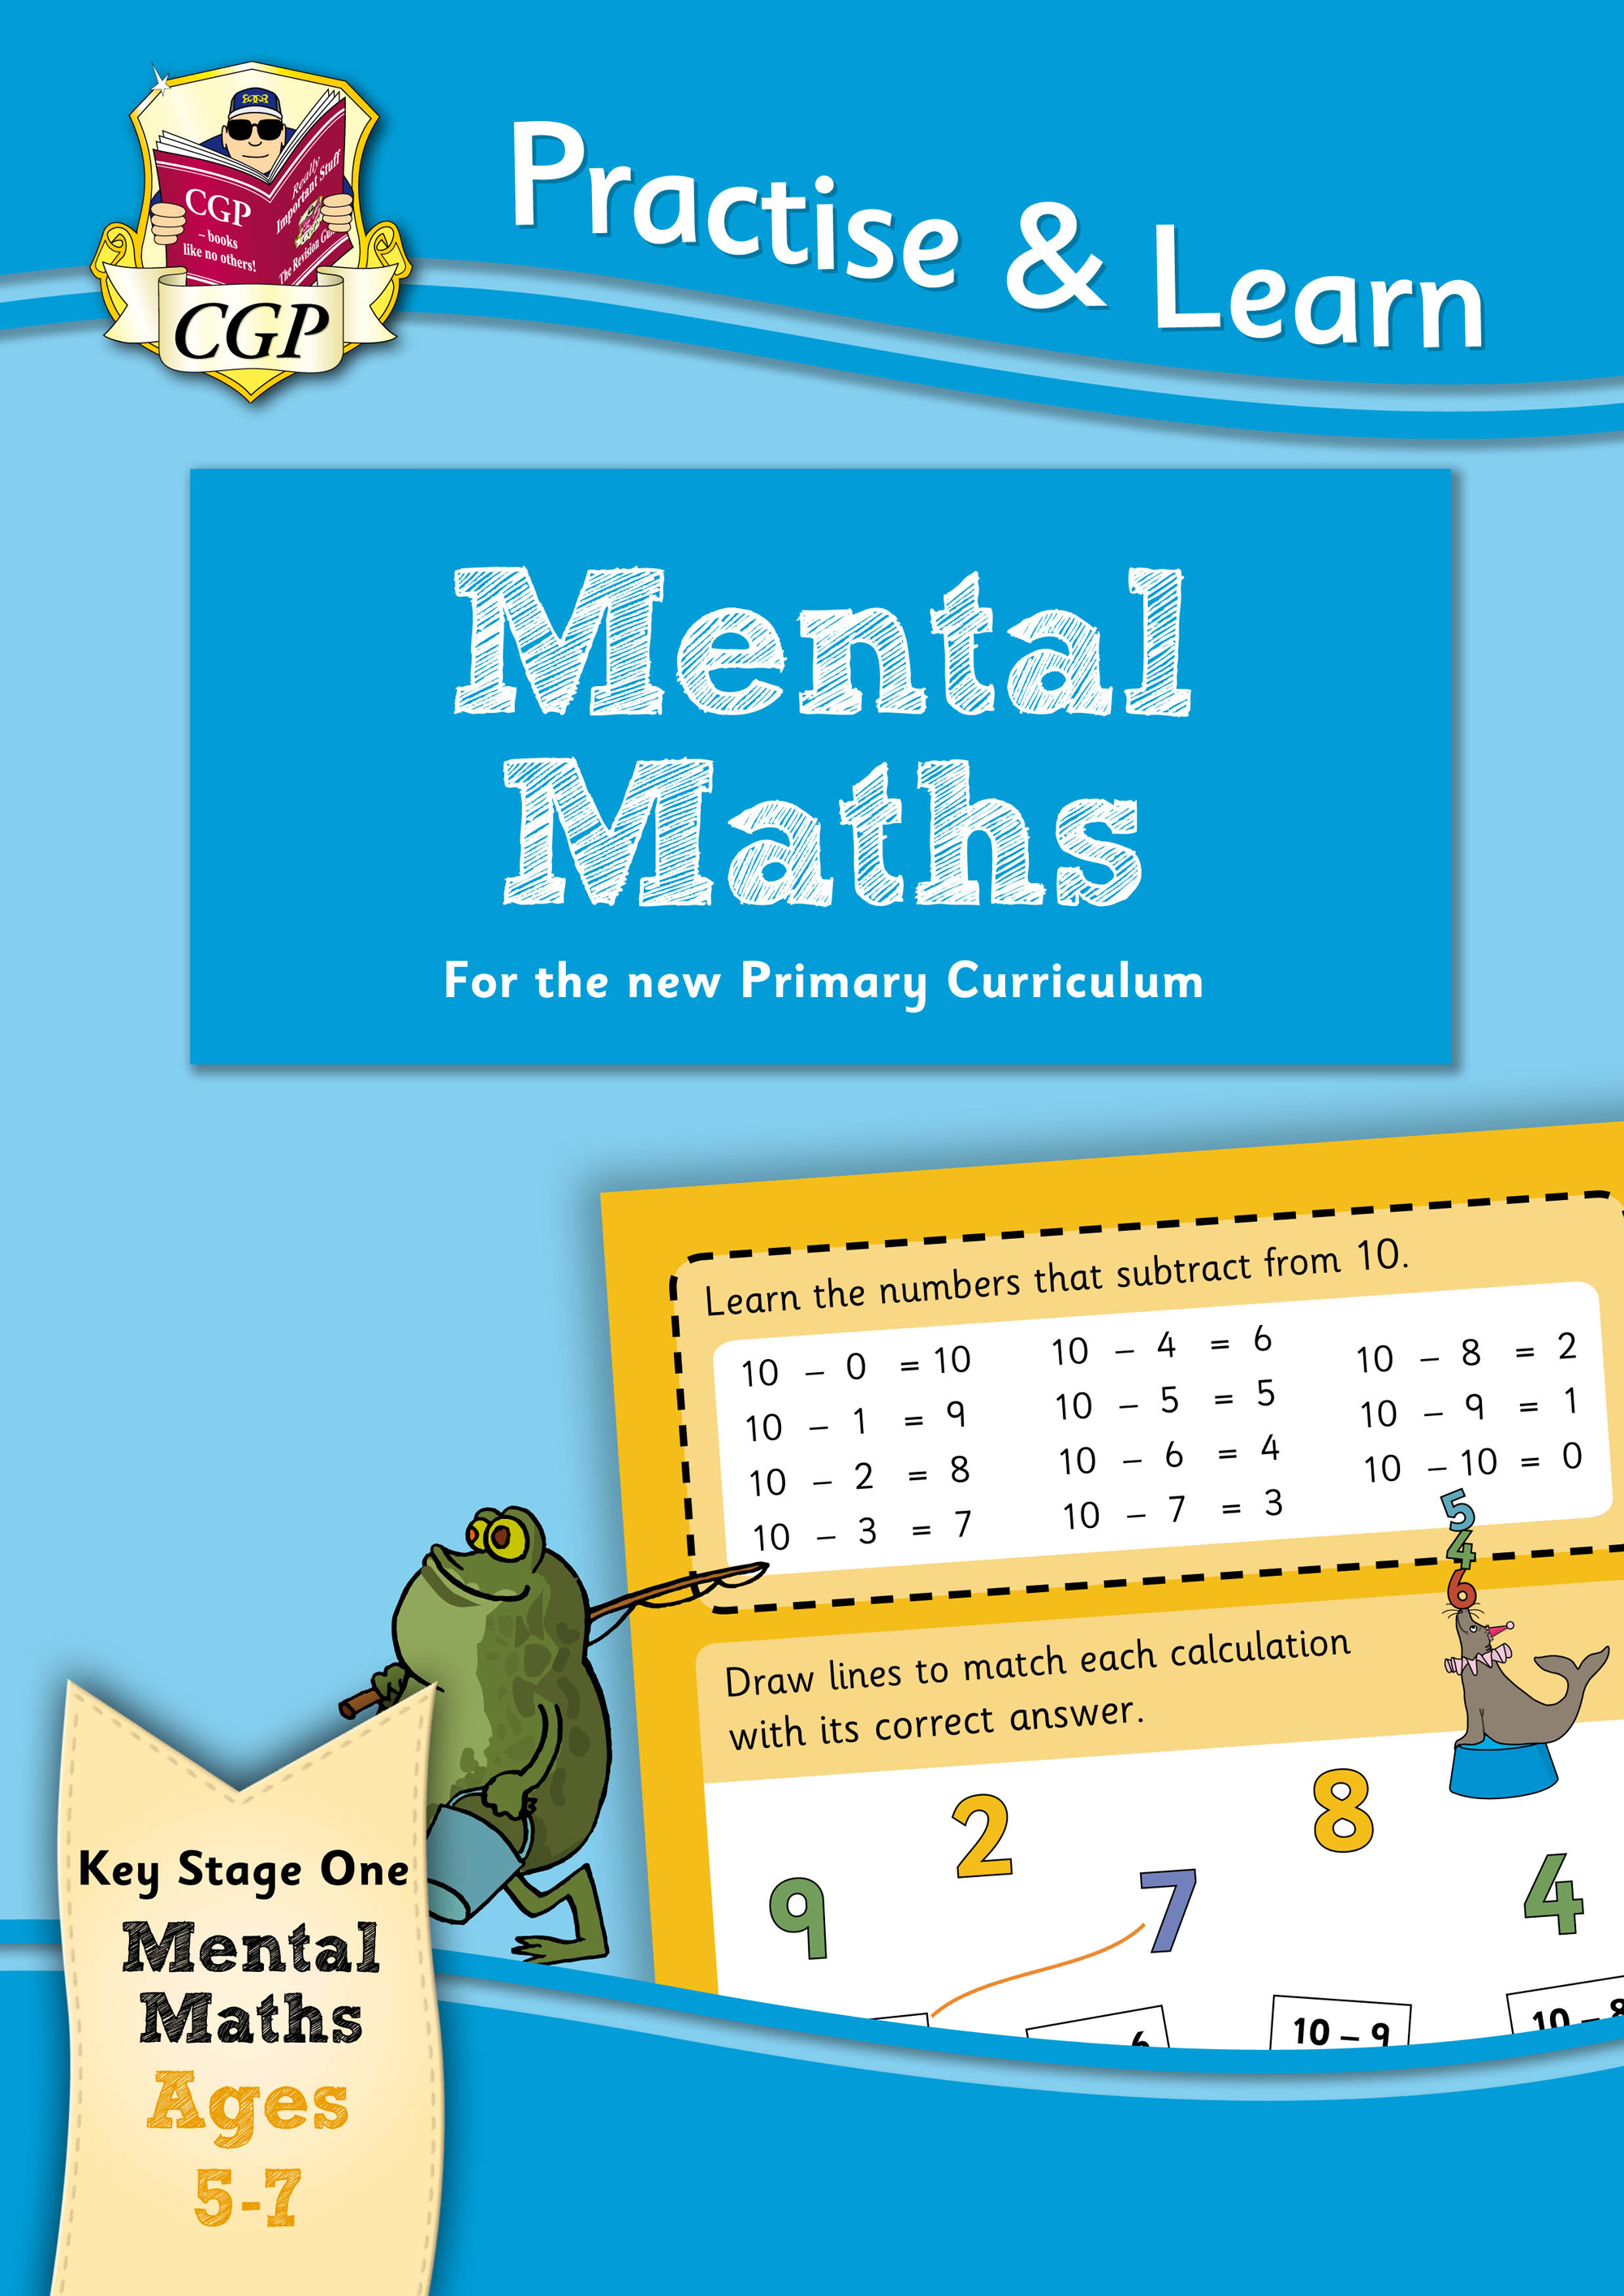 MPMA12DK - New Curriculum Practise & Learn: Mental Maths for Ages 5-7